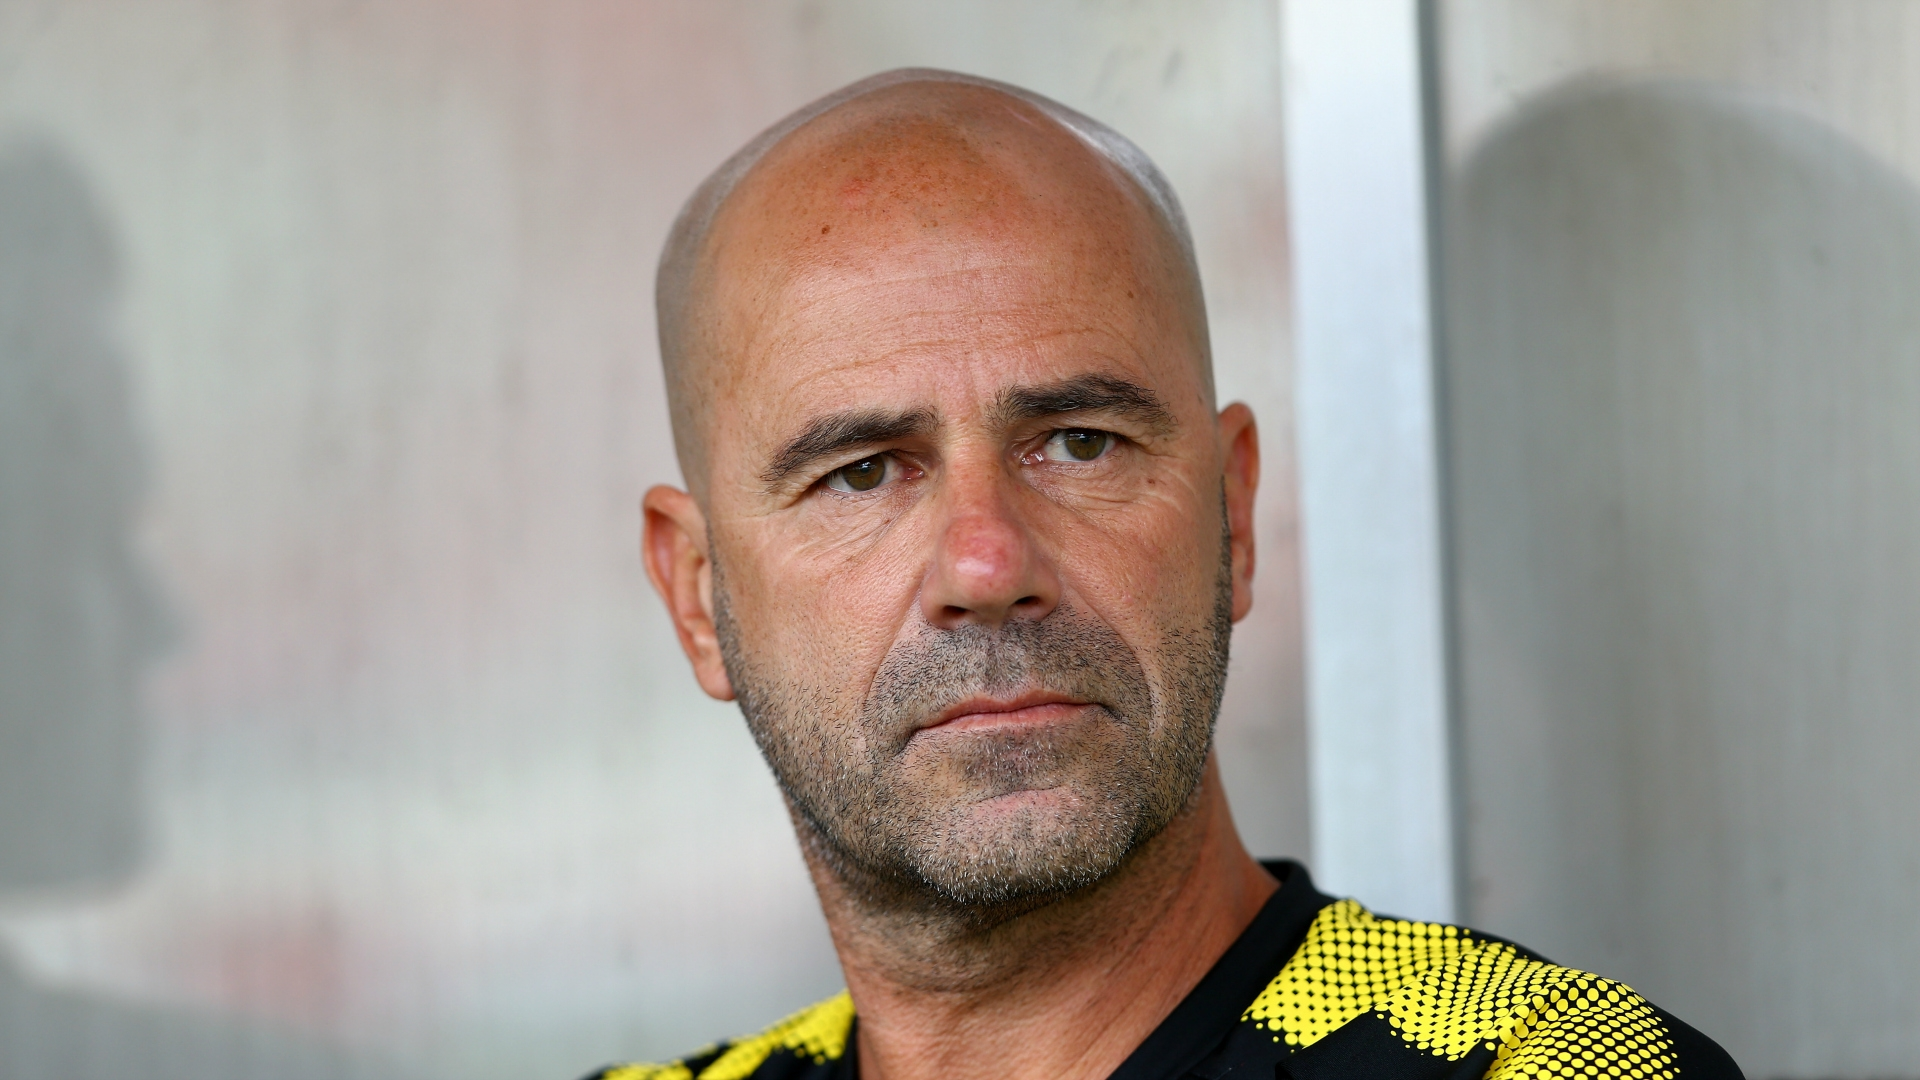 The fans and the club's board will hope that Bosz's time to get accommodated will be short and that the team will once again start to look like a team that can win the Bundesliga. The fans and the club's board will hope that Bosz's time to get accommodated will be short and that the team will once again start to look like a team that can win the Bundesliga.